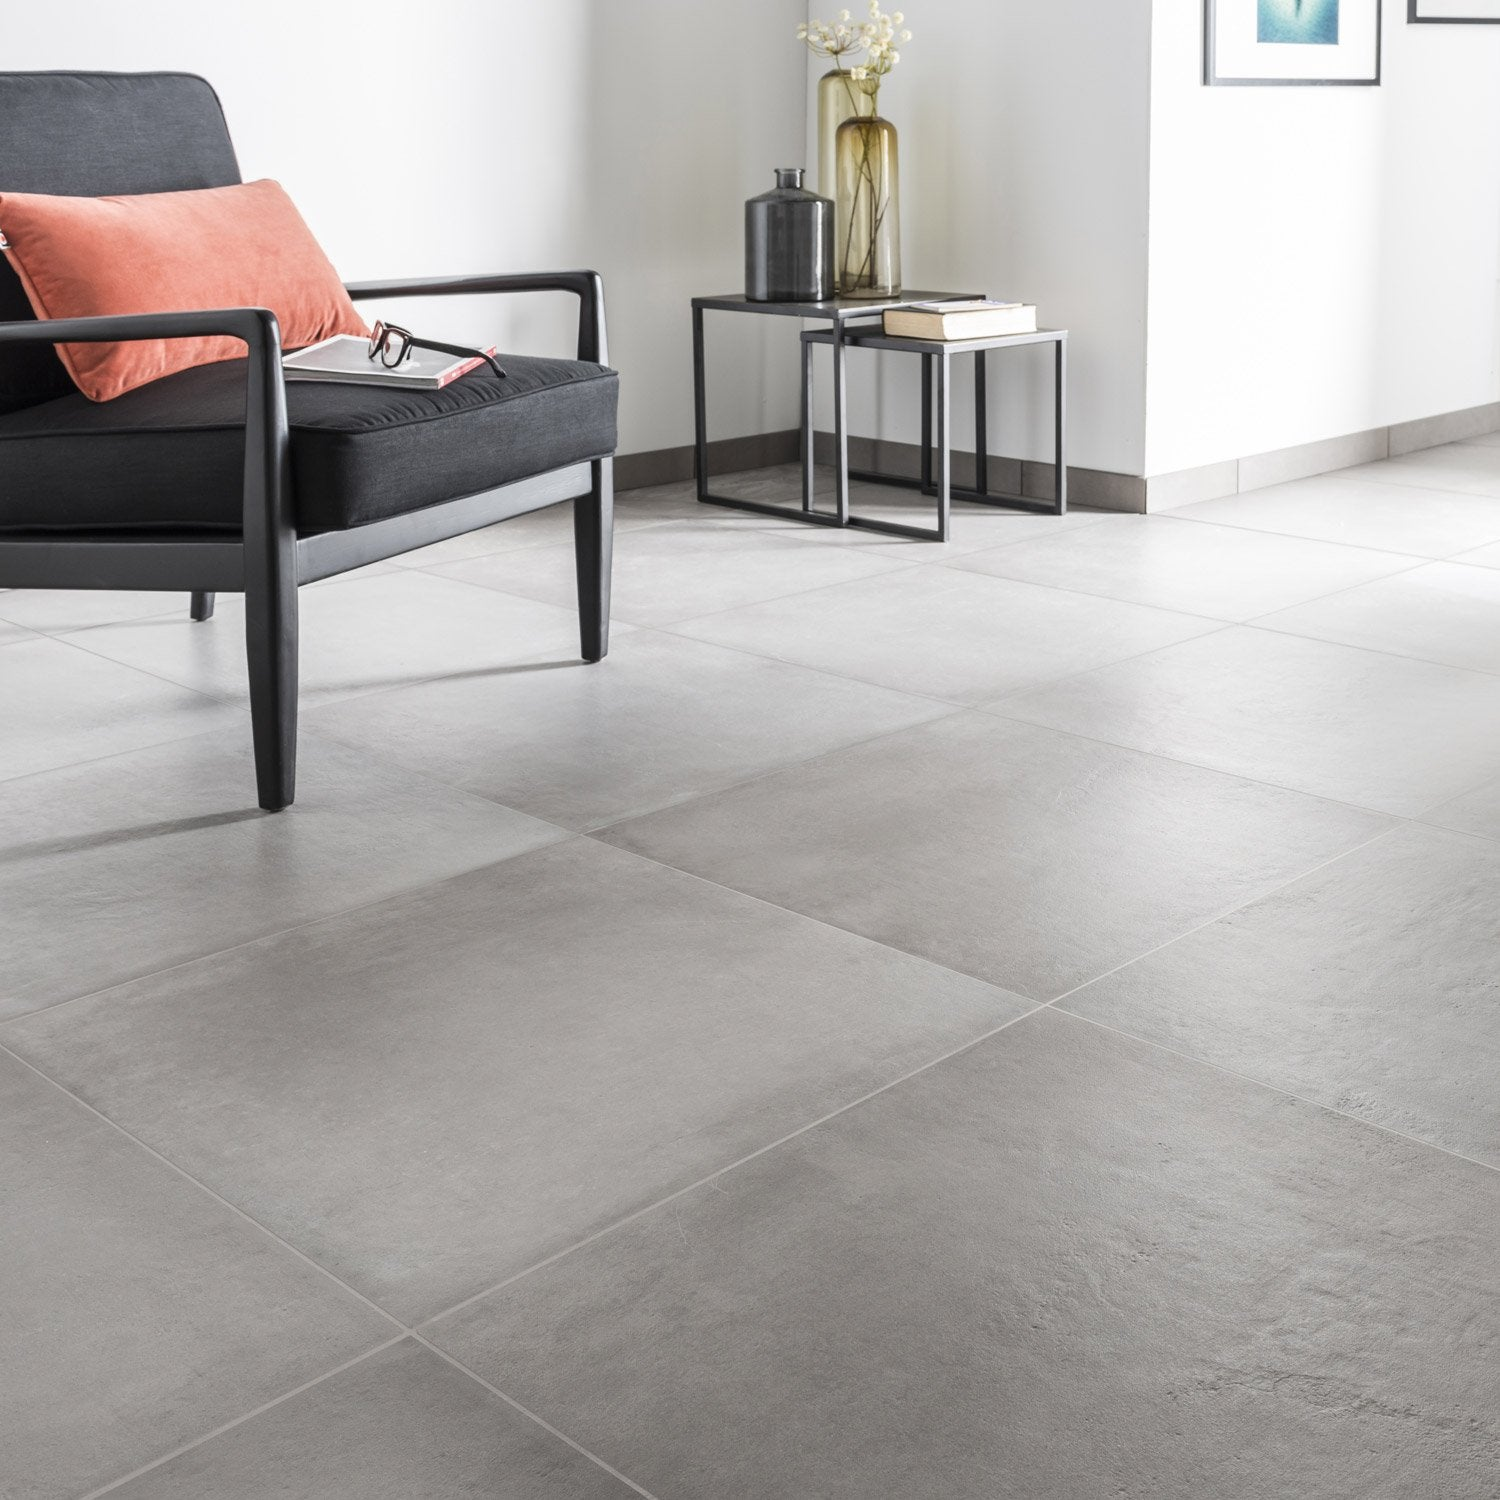 Carrelage sol et mur gris ciment effet b ton time x l for Carrelage grand carreaux gris